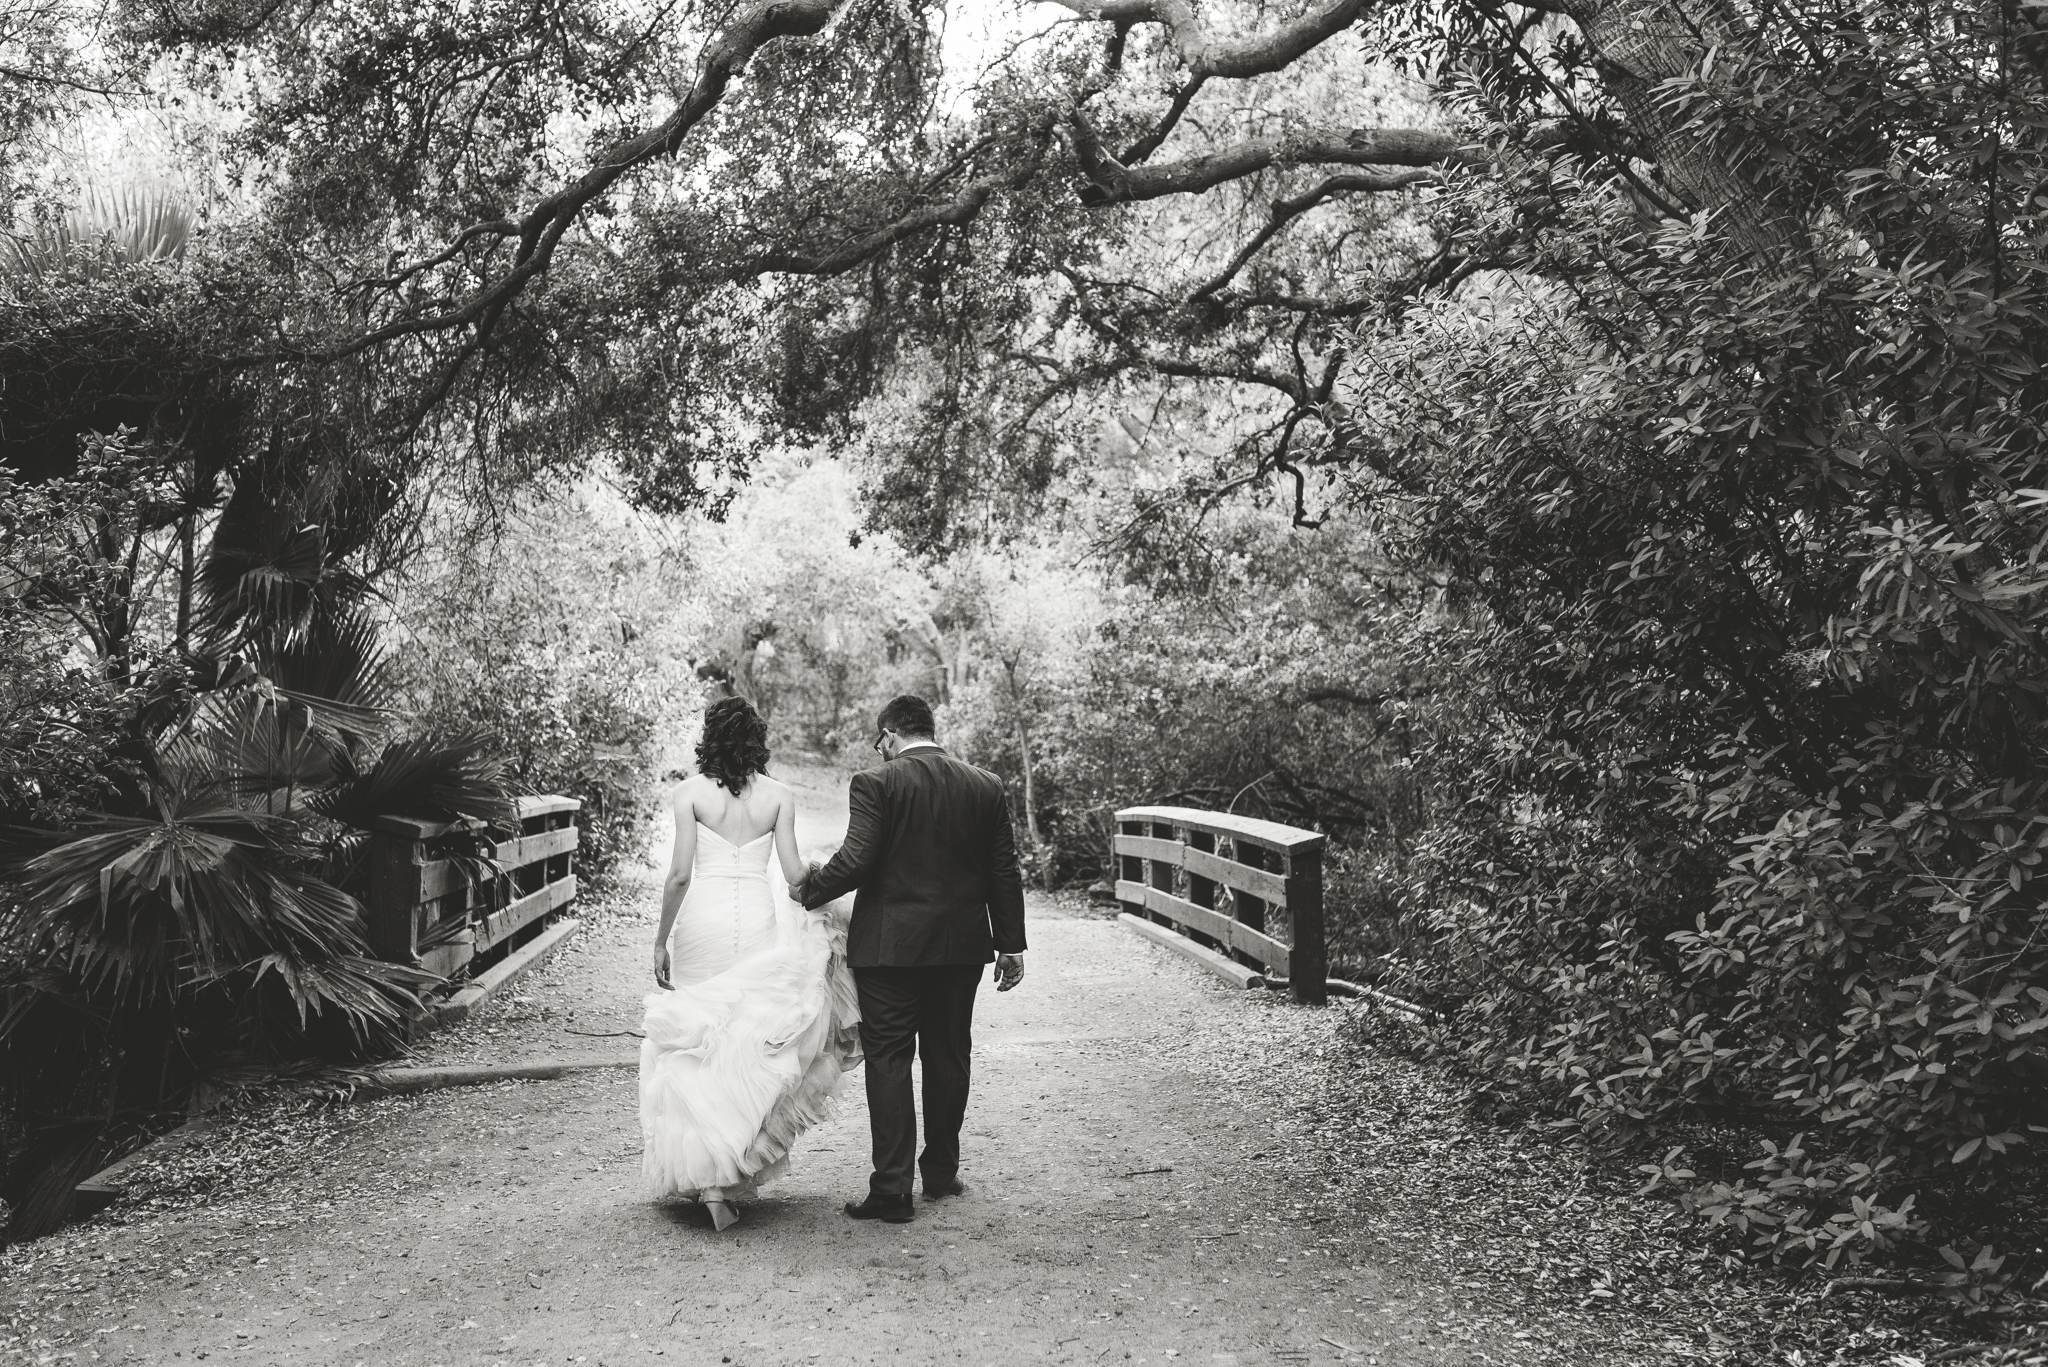 Isaiah & Taylor Photography - Los Angeles Lifestyle Wedding Photographer-31.jpg